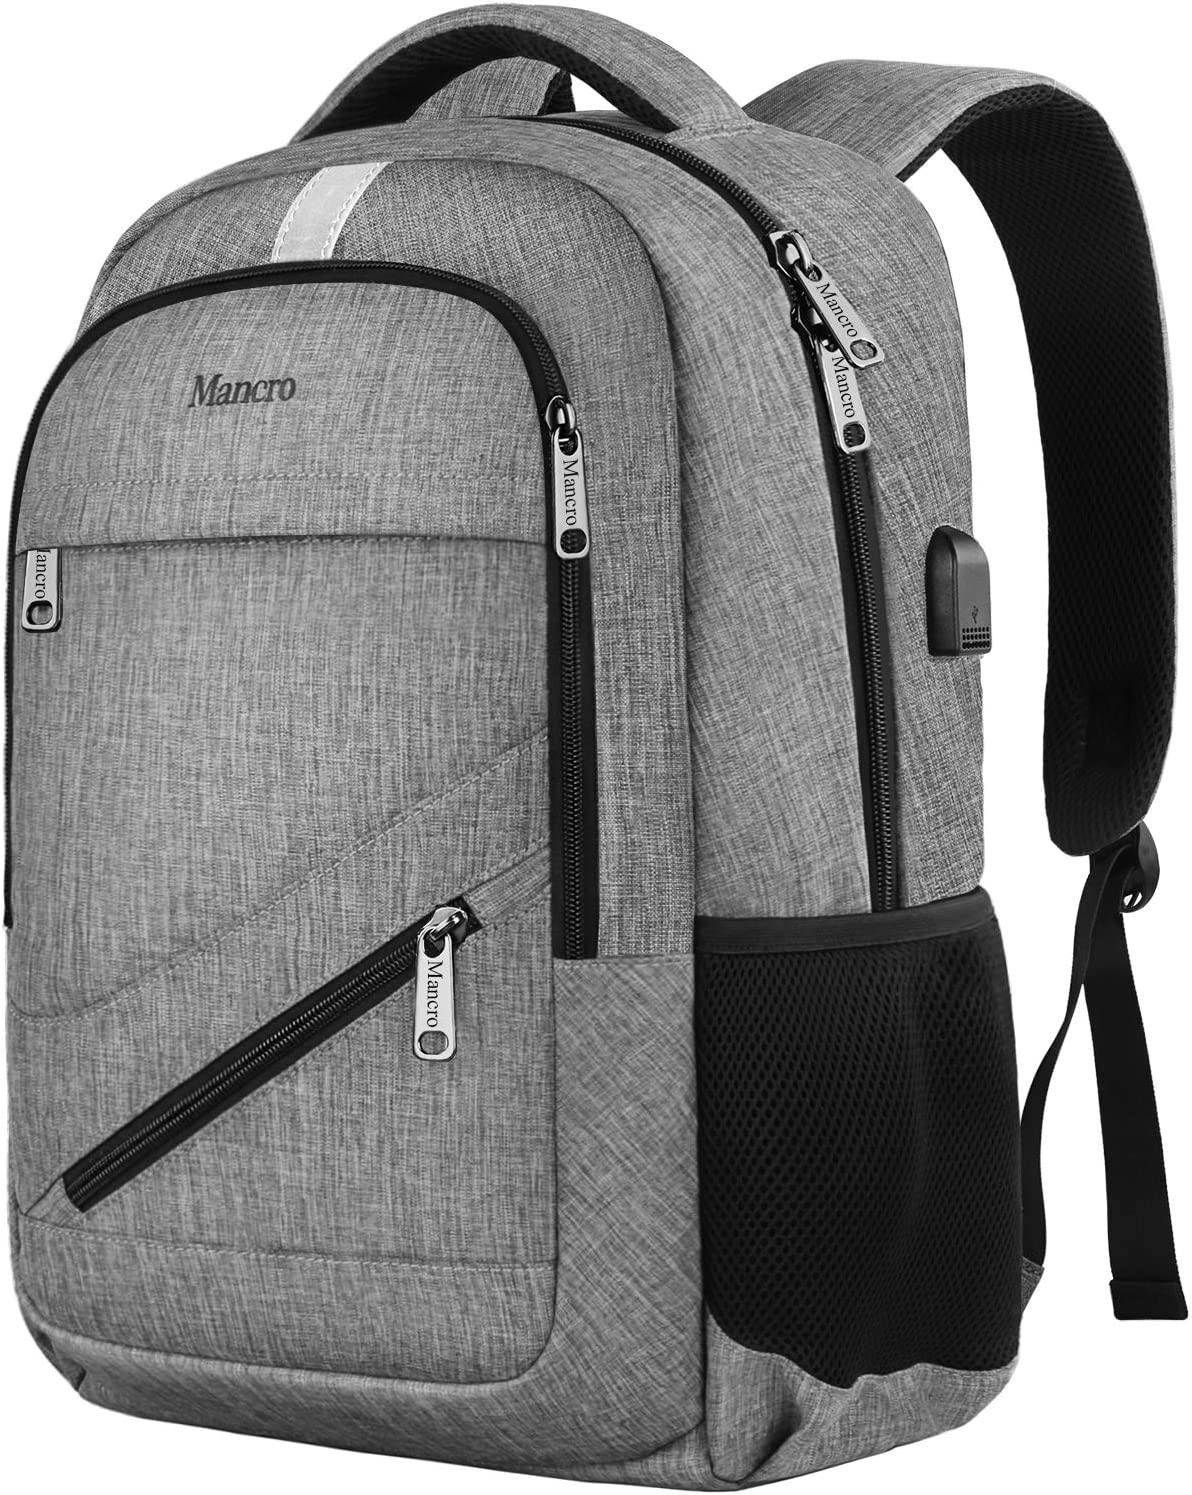 Laptop Backpack, Anti Theft Travel Backpack with USB Charging Port for Men and Women, Water Resistant College School Computer Bookbag, Slim Business Bags with RFID Pocket Fits 15.6 Inch Laptops, Grey